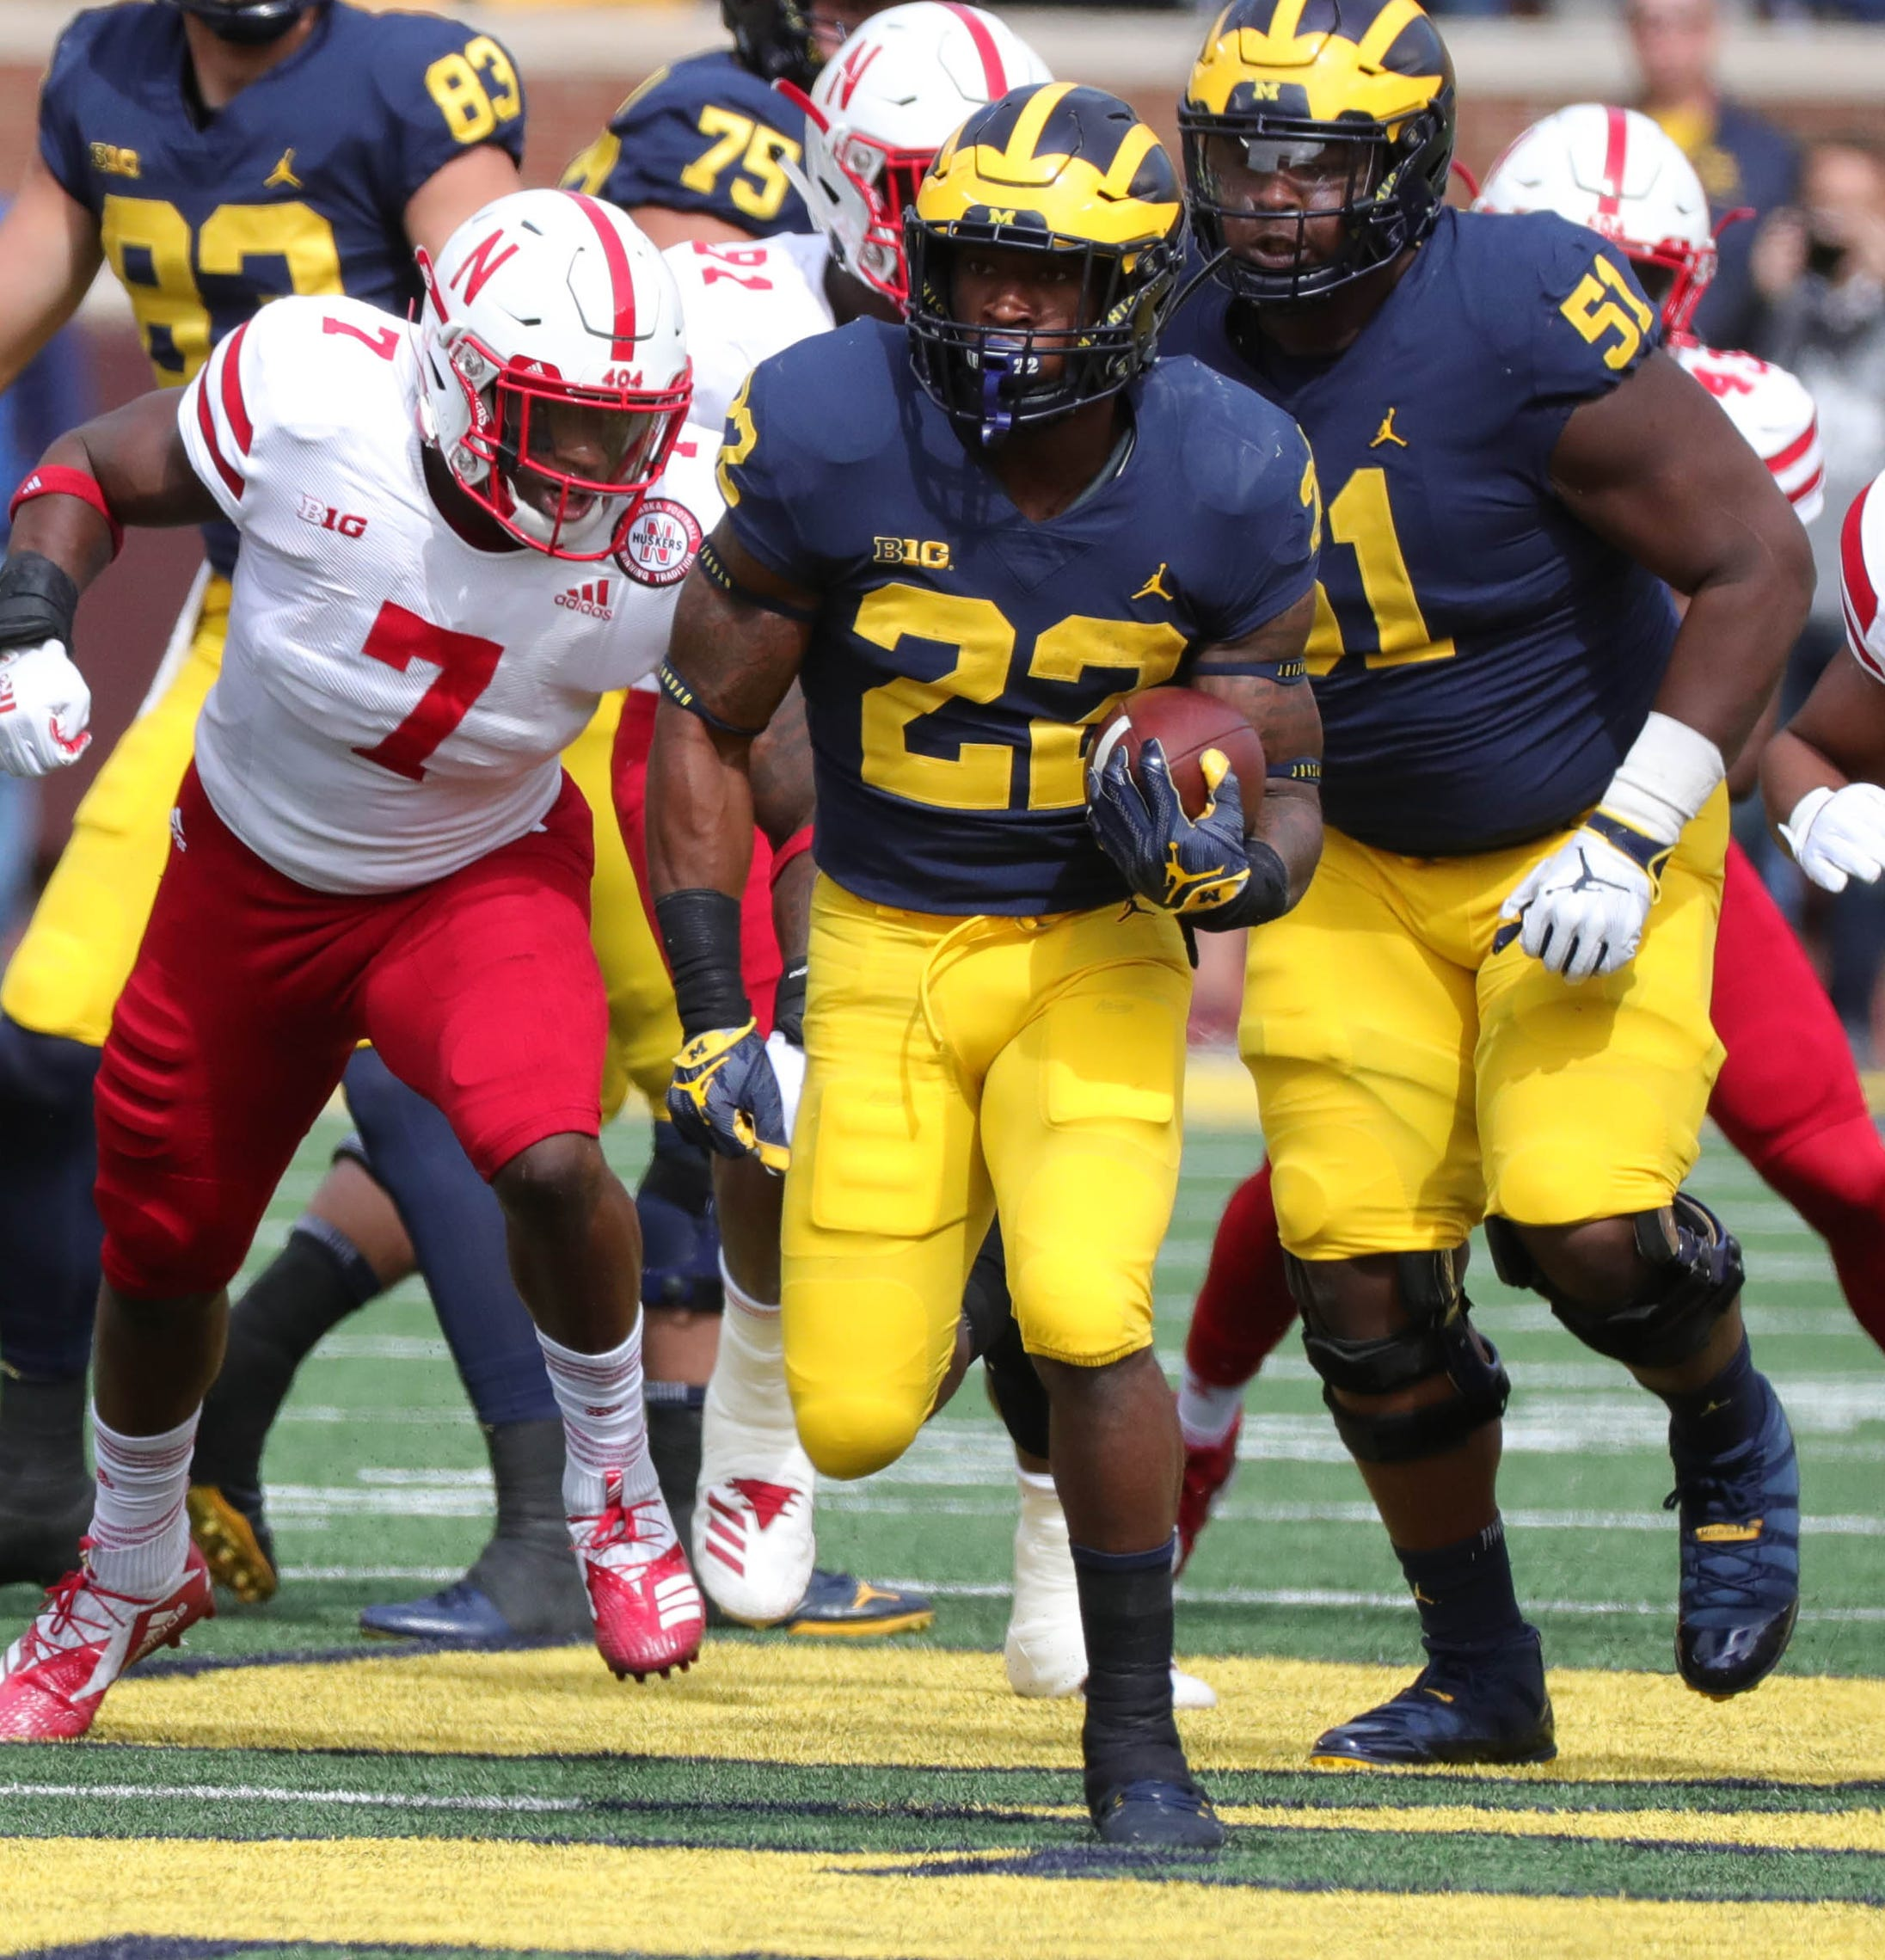 Michigan running back Karan Higdon runs the ball for a first down against Nebraska during the first half on Saturday, Sept. 22, 2018, at Michigan Stadium.